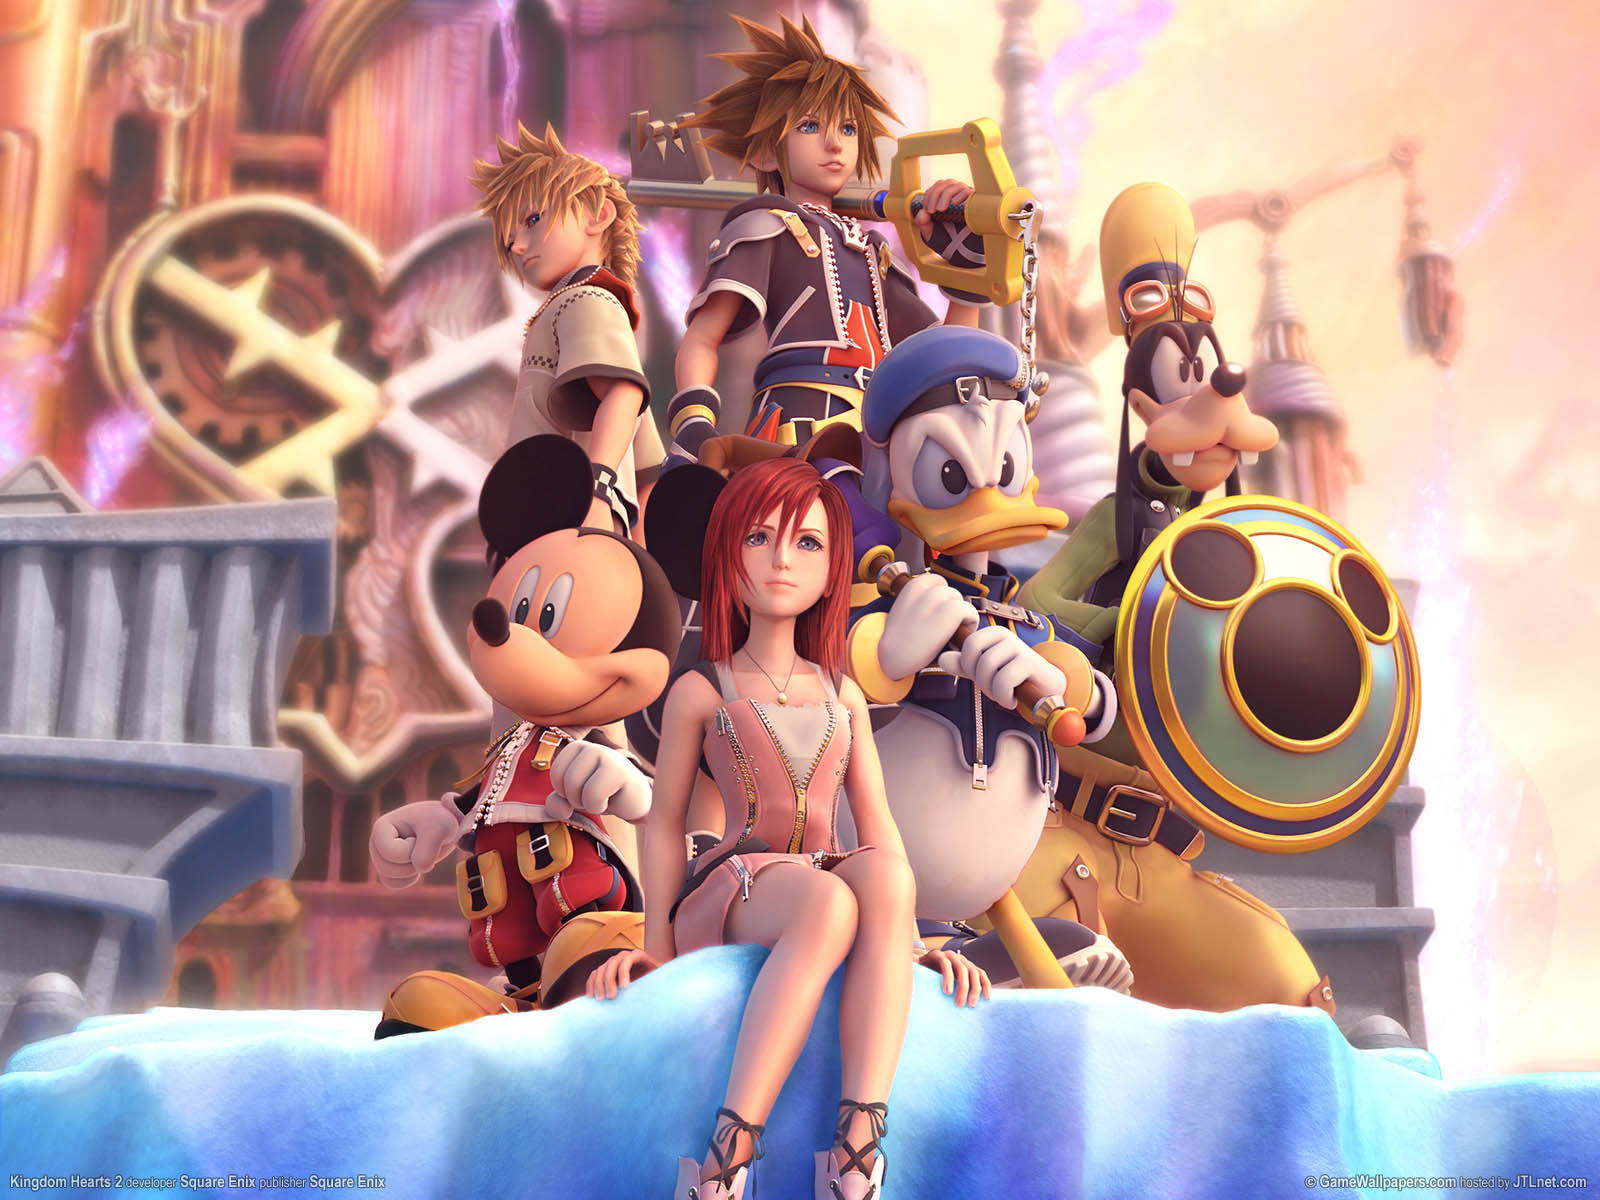 Kingdom Hearts 2 - Review (PS2)